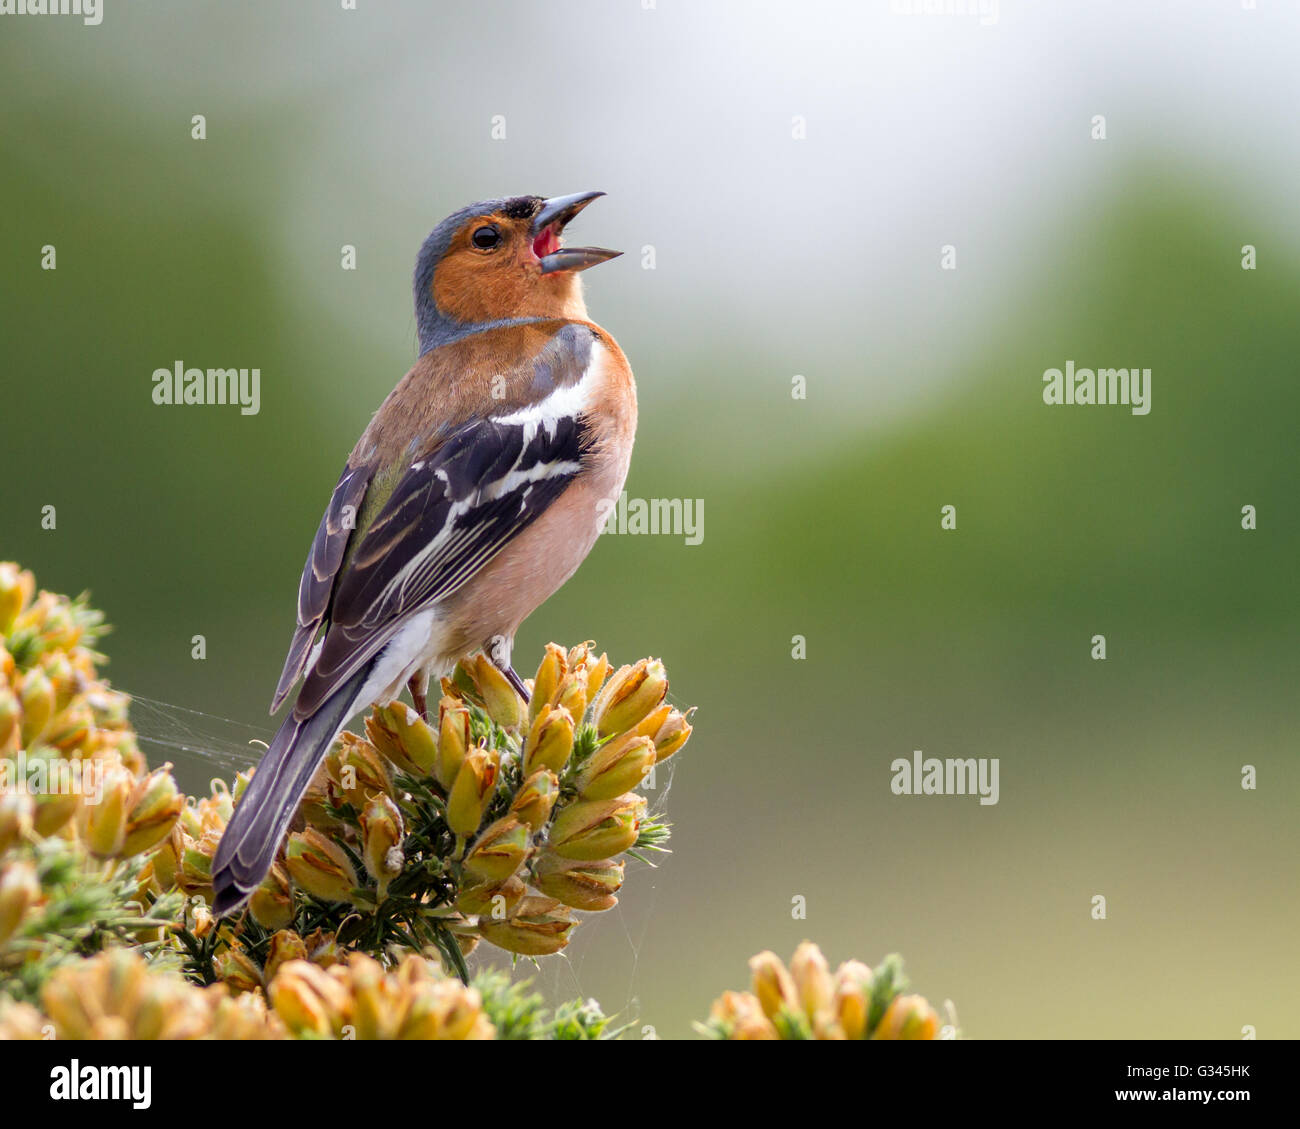 Male chaffinch singing in the gorse, Yorkshire, UK - Stock Image